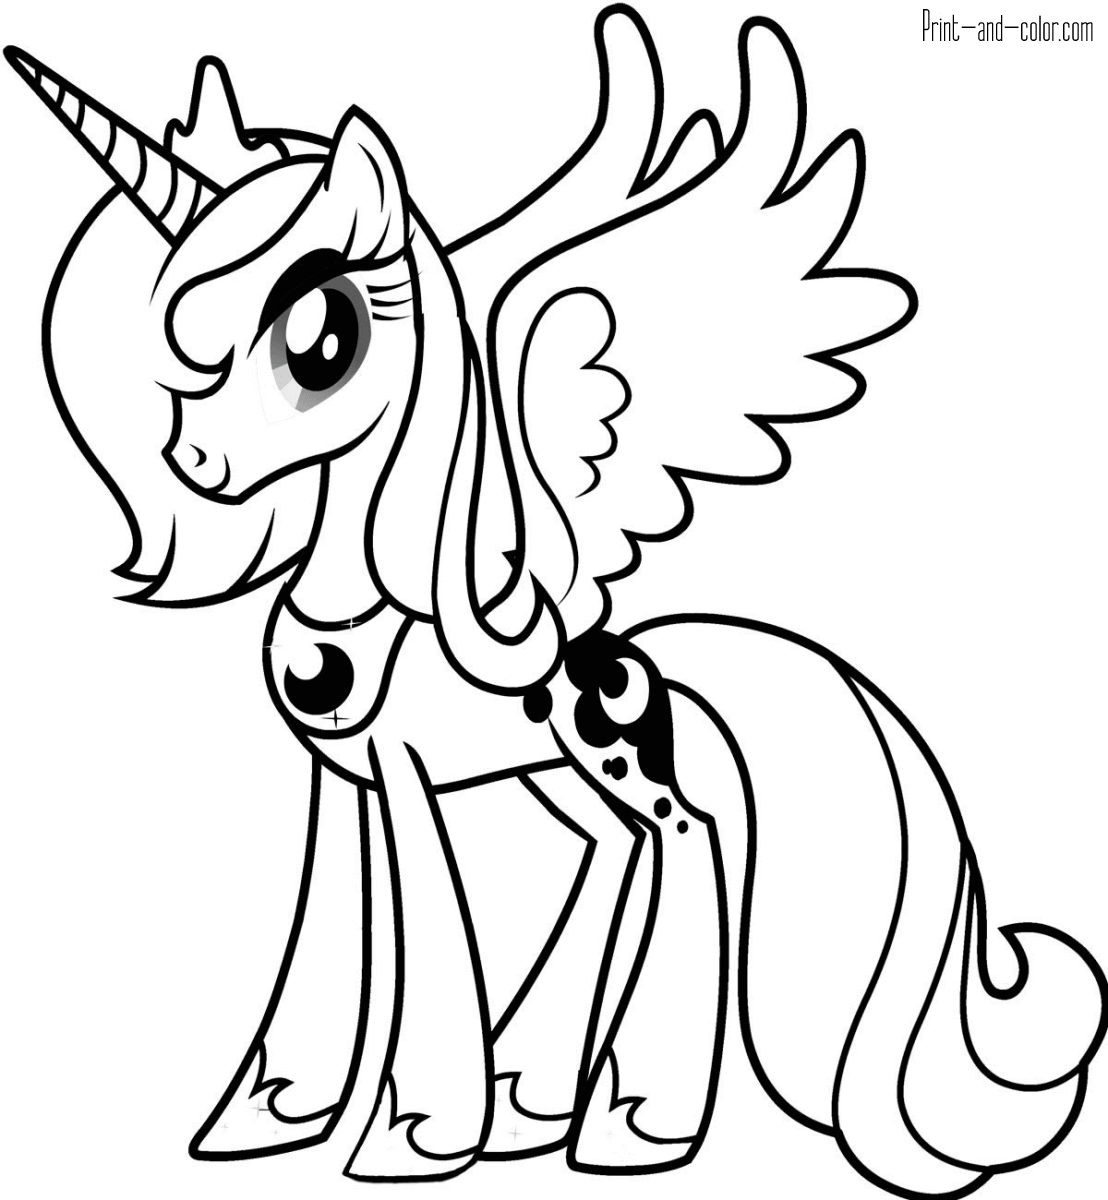 my little pony coloring sheets to print my little pony coloring pages print and colorcom little print coloring sheets pony my to